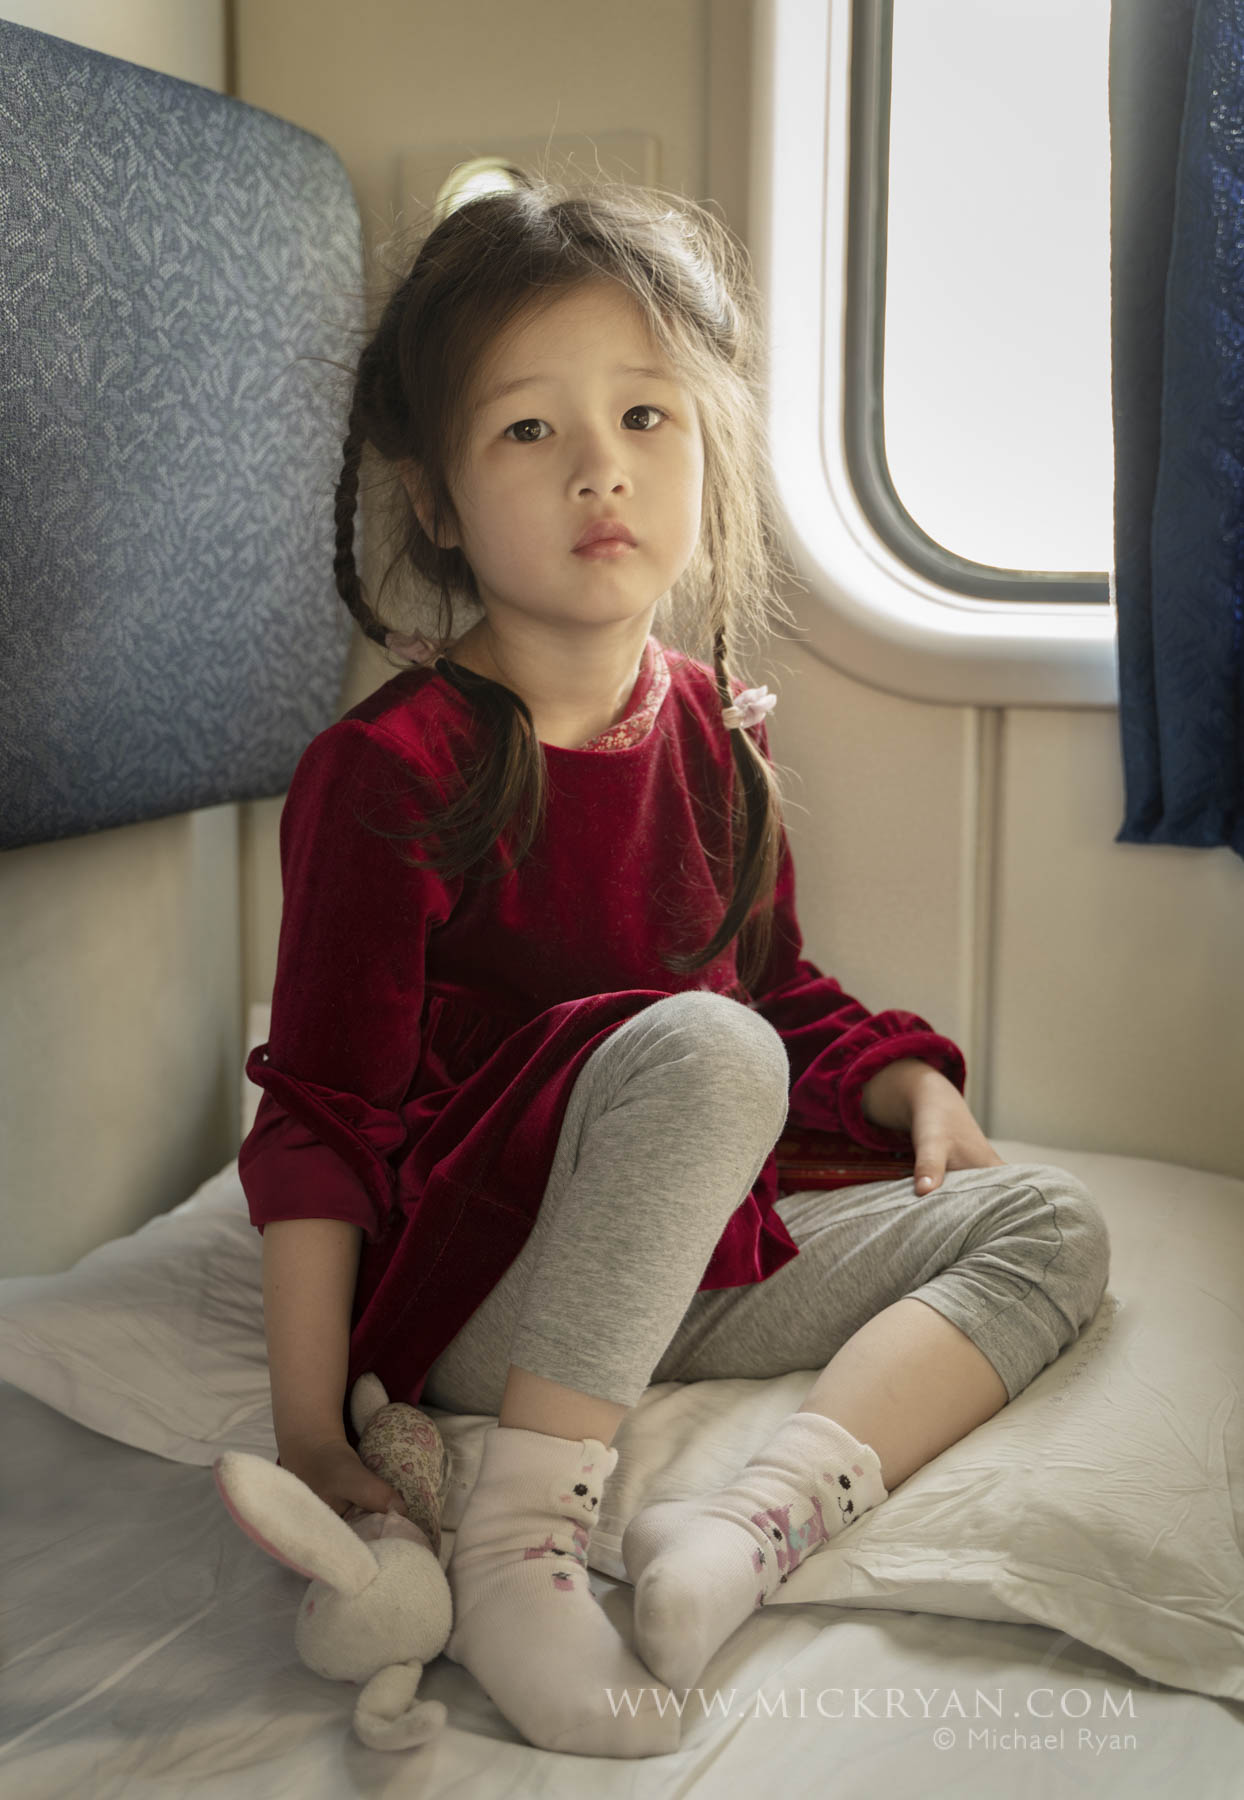 Her first sleeper train. She says she prefers the 'sitting' train. I was kept awake all night by the sound of a pig being slaughtered - which turned out to be a man with the worst snore I have ever heard. Never again.